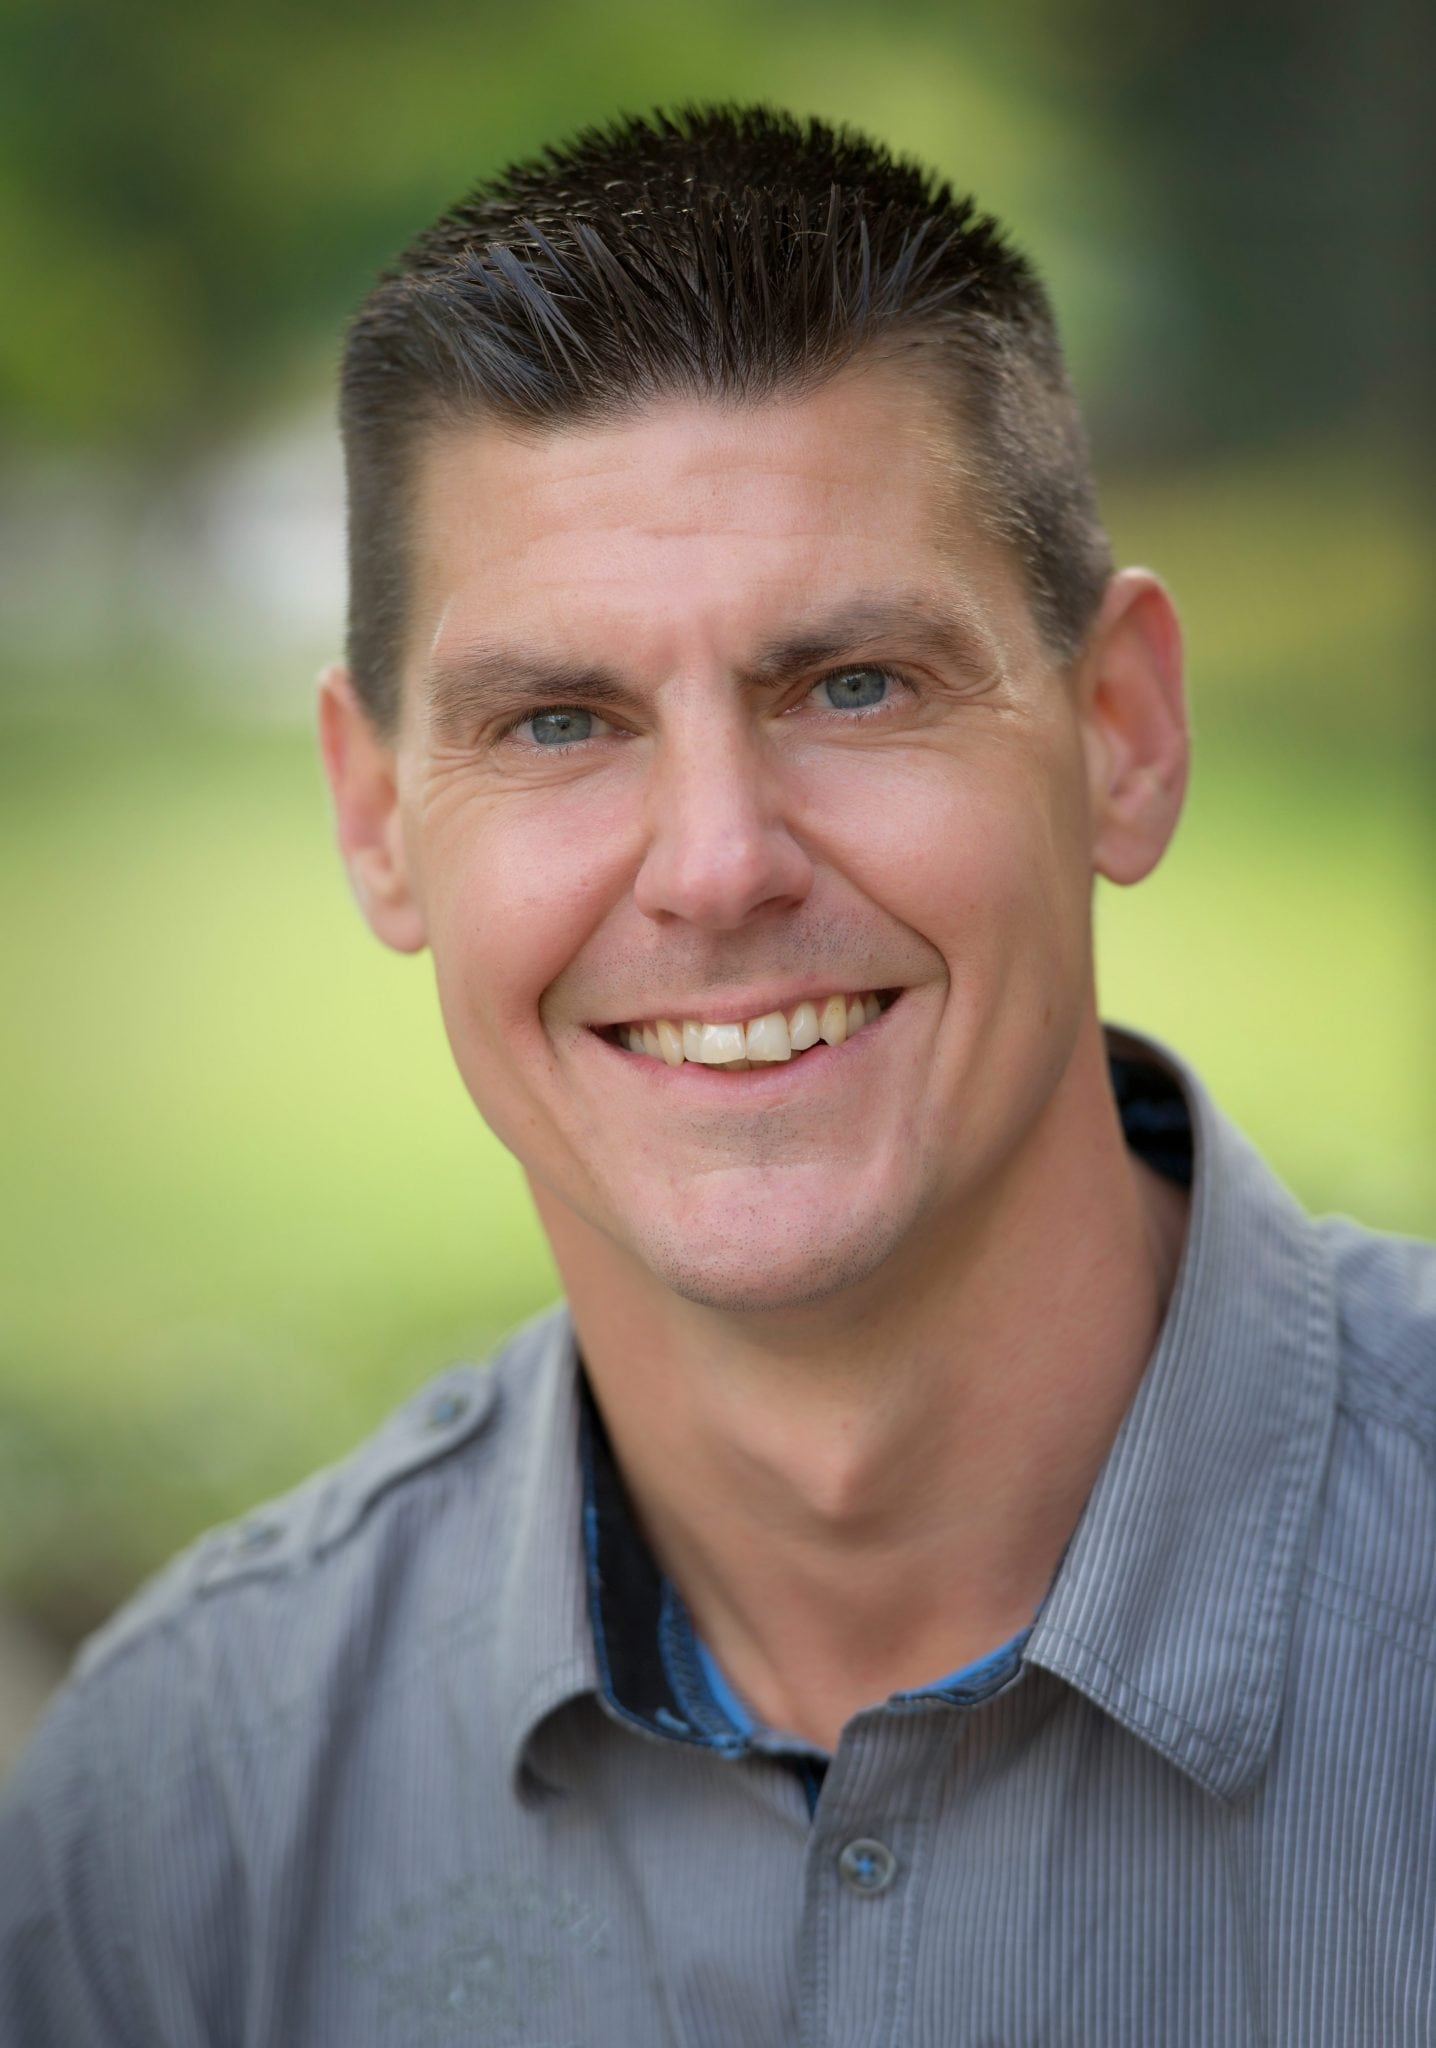 Photo of Prof. Trevor DeVries smiling and wearing a blue collared shirt